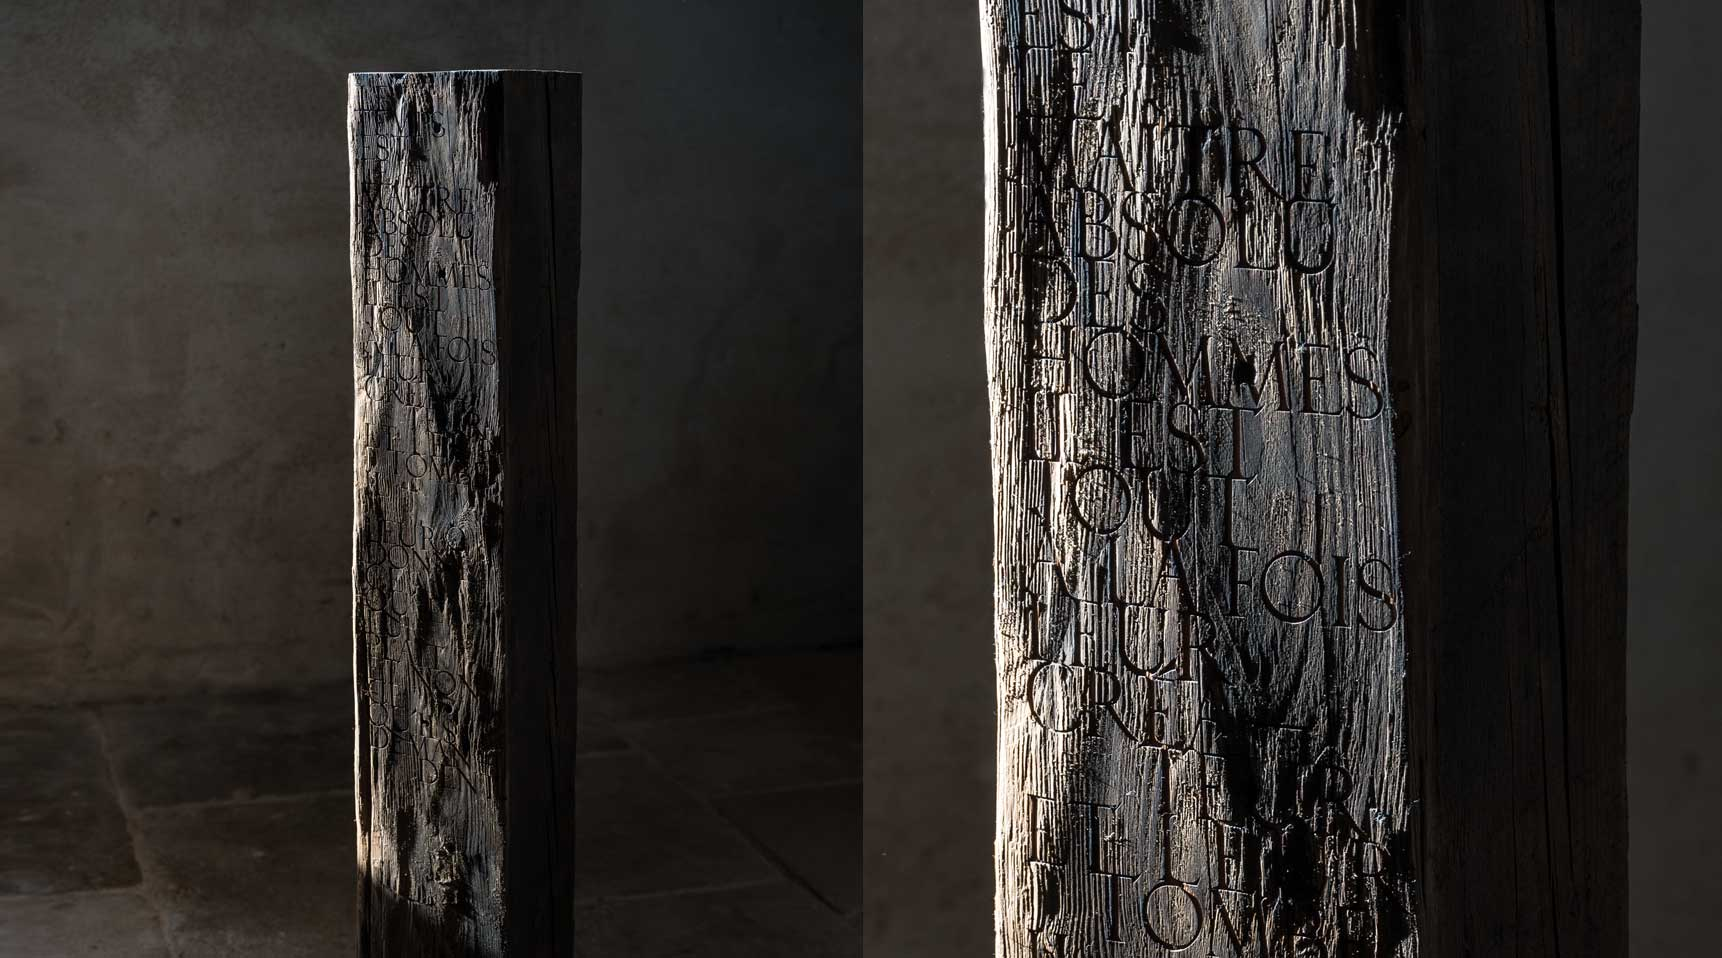 Monolith – Quote from William Shakespeare, 2019 – Hundred year old cedar wood with engraved lettering,111,8 x 18,5 x 18,6 cm